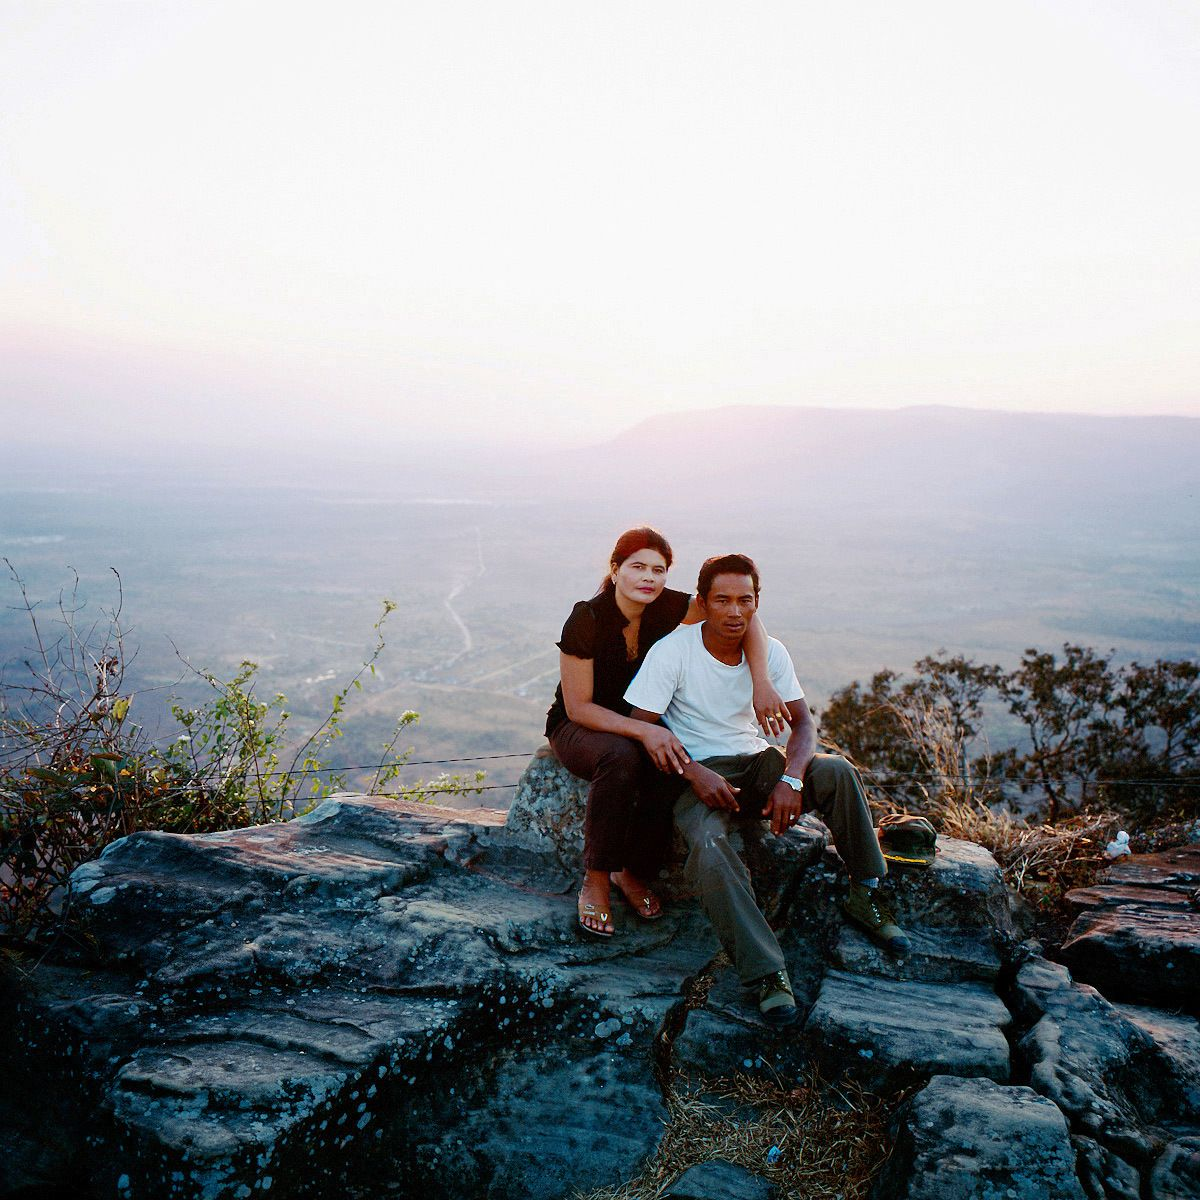 A former Khmer Rouge soldier, Vong, age 42, with his wife Mon. They are married two years ago, live together at the front lines.Preah Vihear temple. Cambodia, 2008